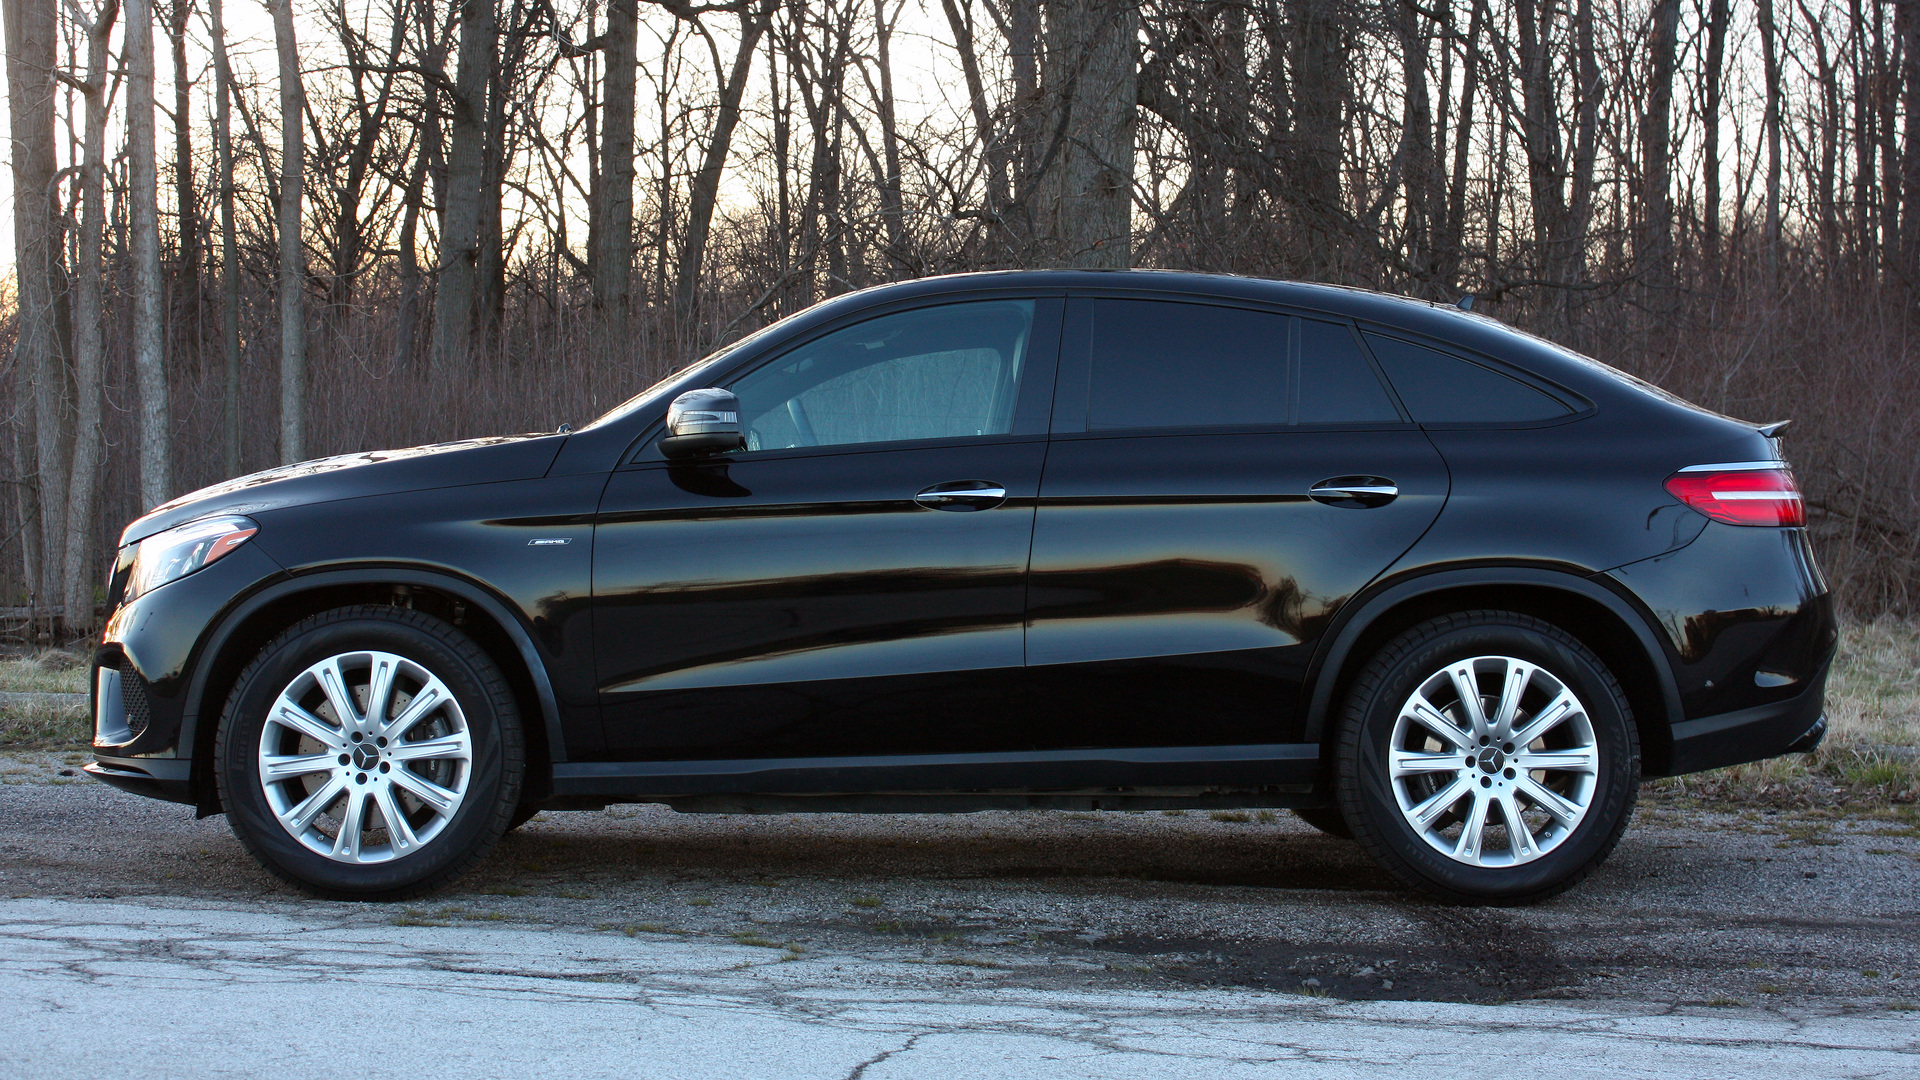 https://icdn-2.motor1.com/images/mgl/KAQ6M/s1/2016-mercedes-benz-gle450-amg-coupe.jpg